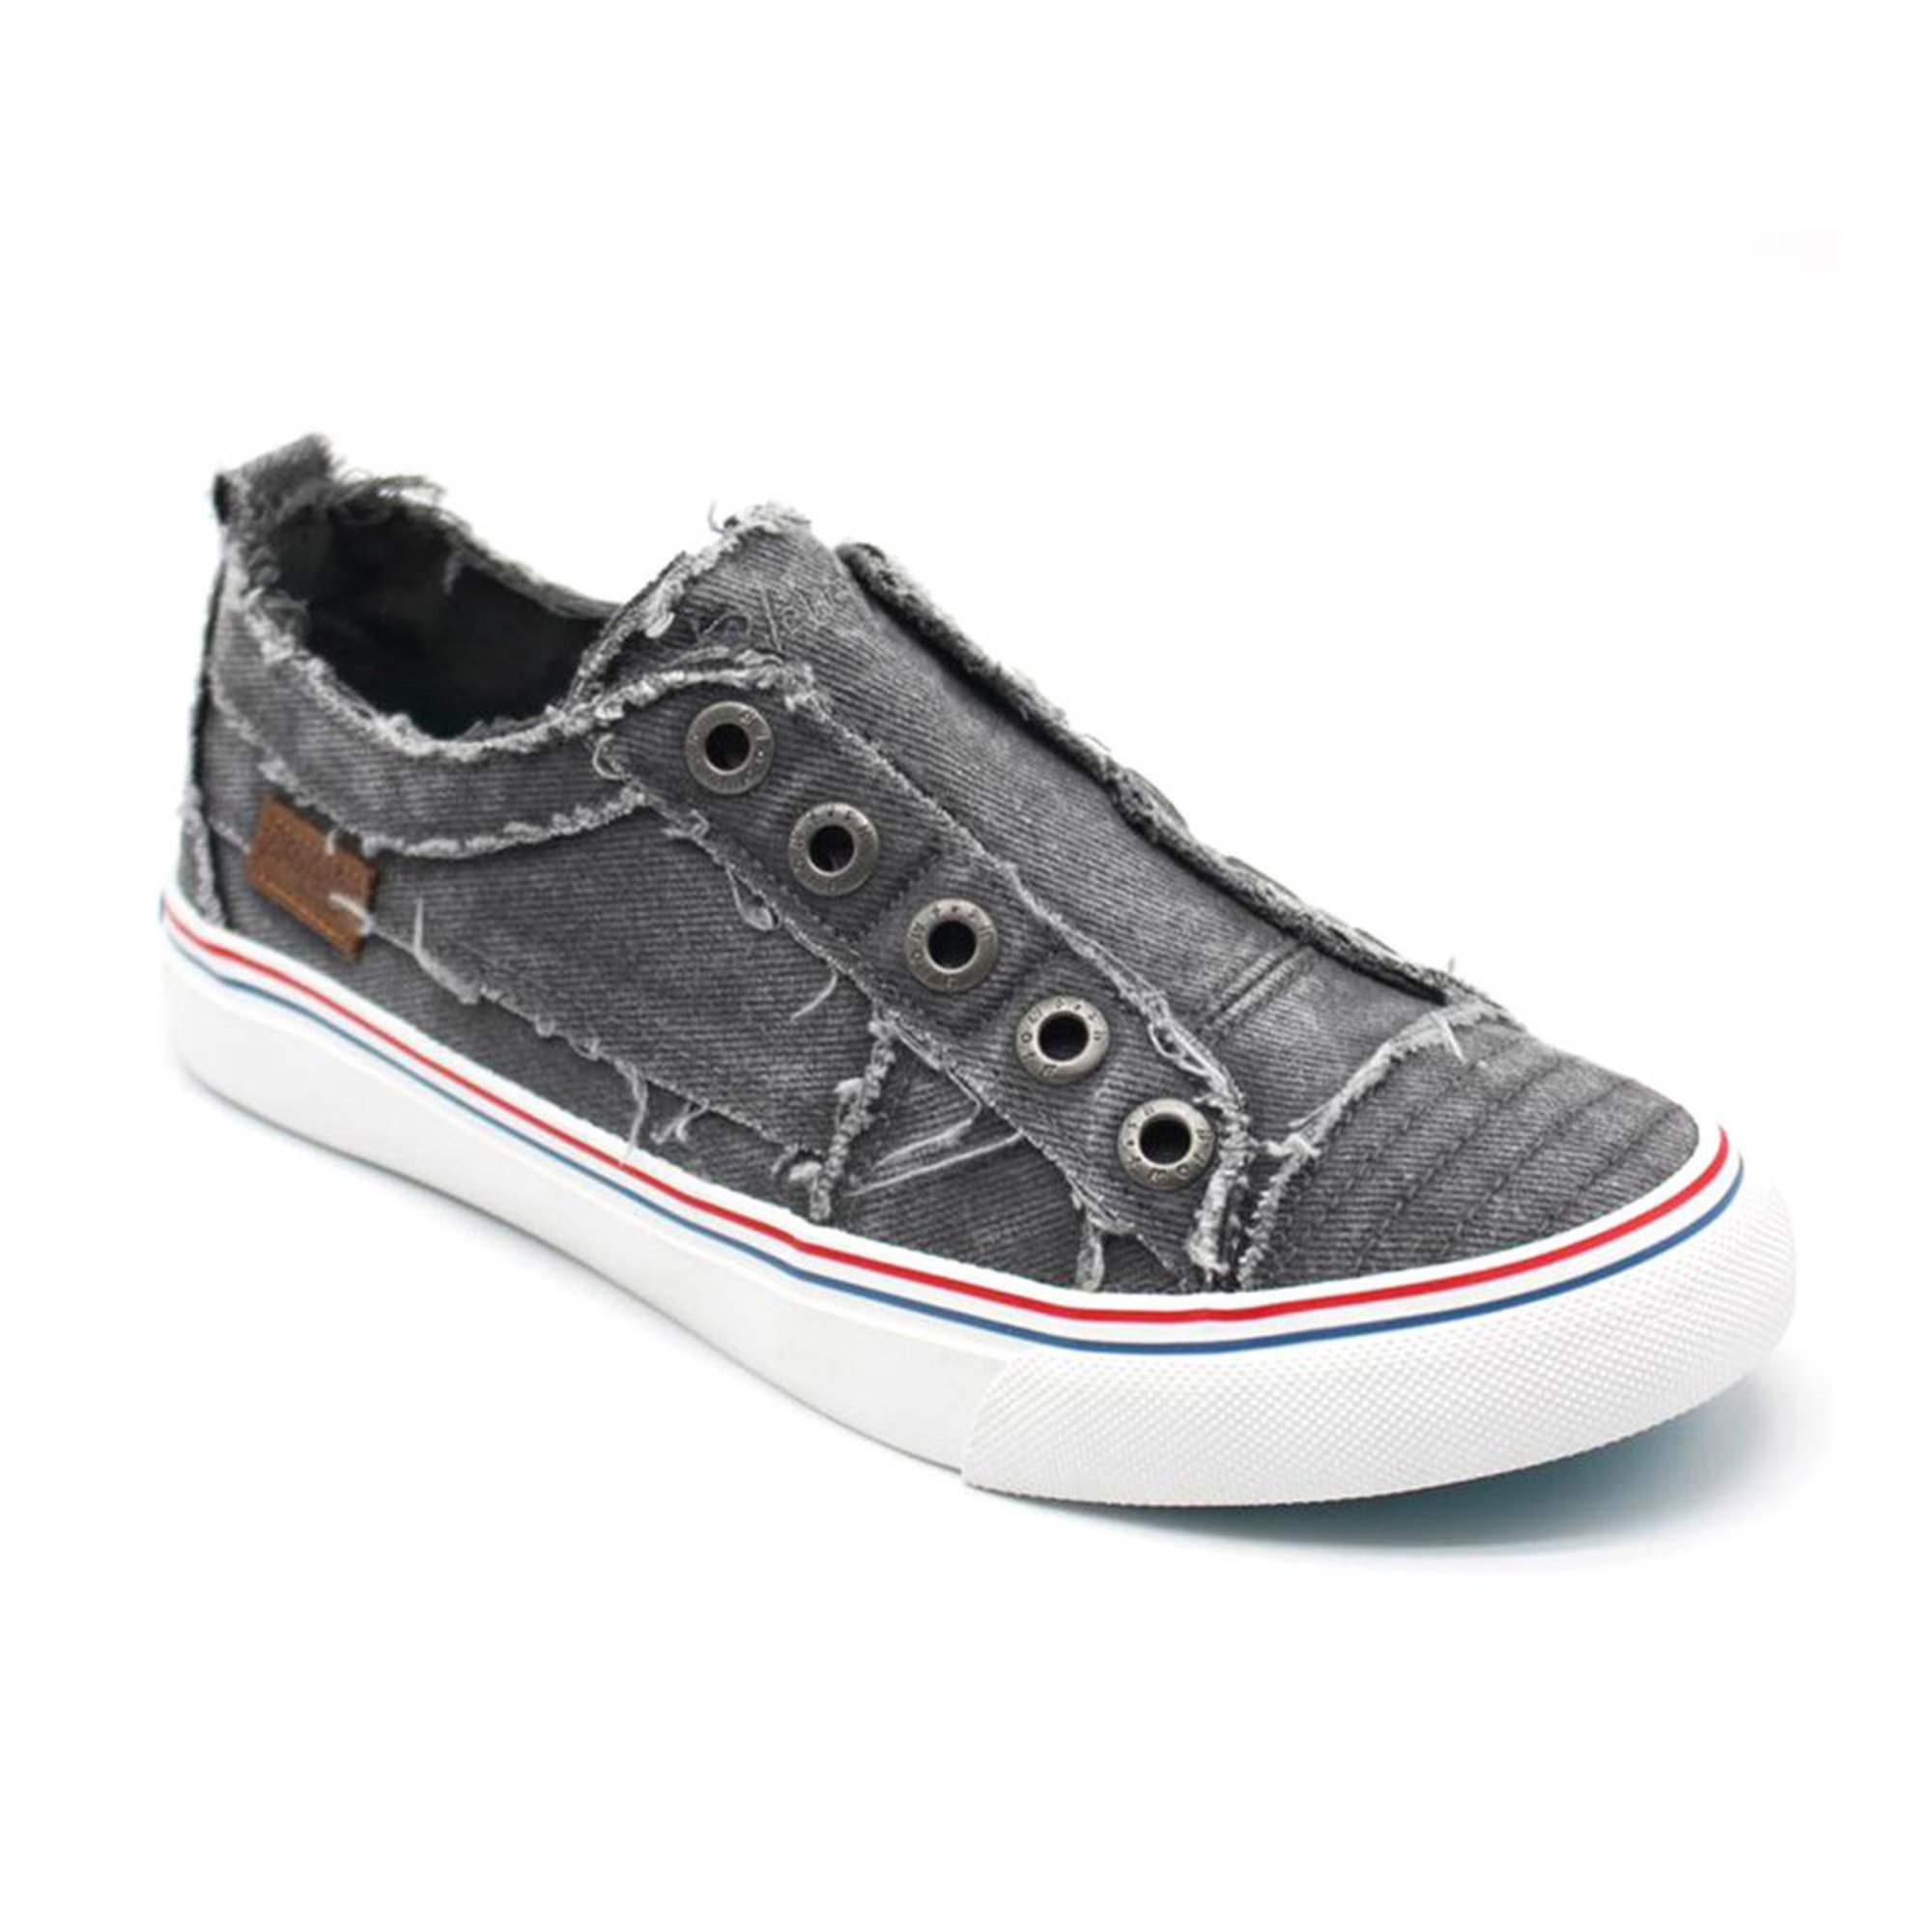 a3150be5f0f7 Blowfish Women s Play Sneaker No Laces